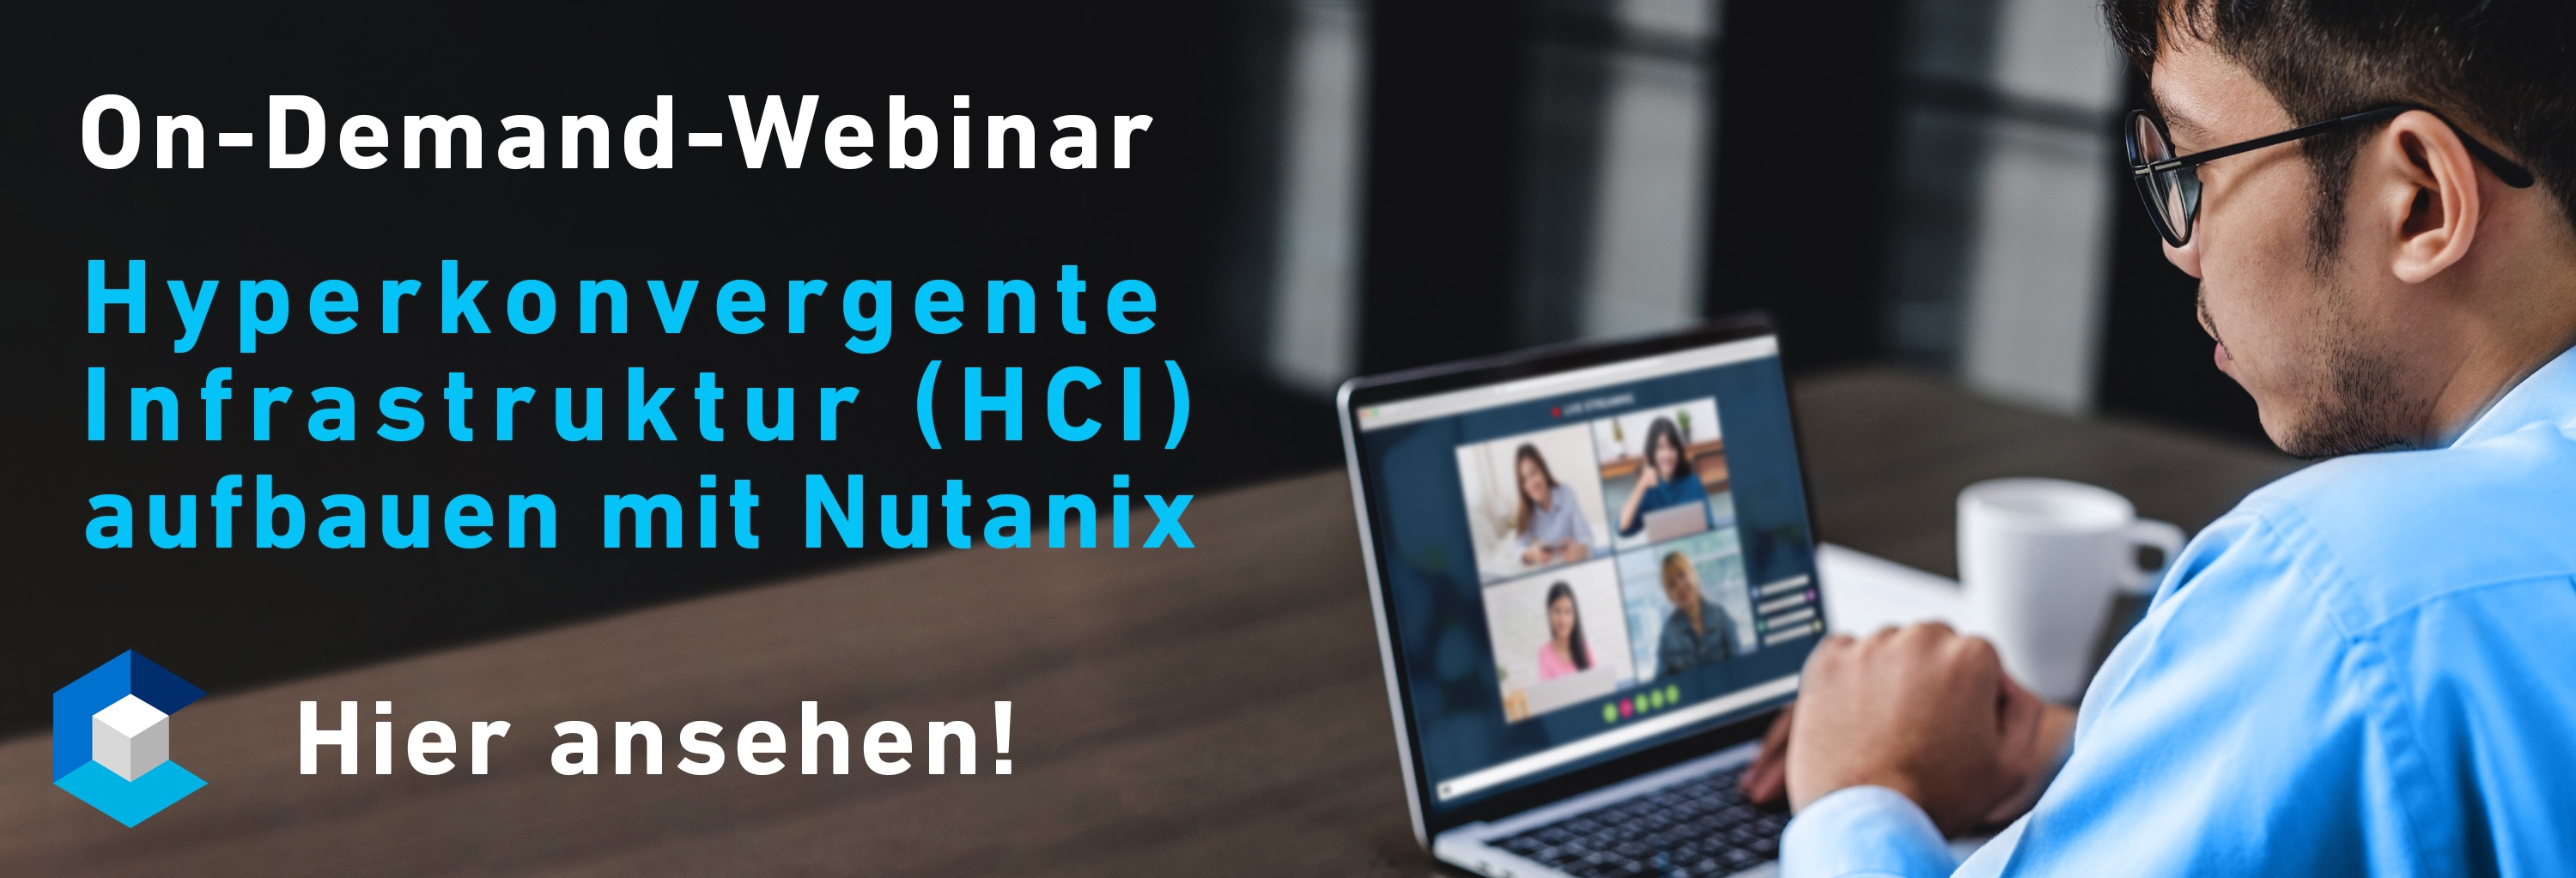 HCI mit Nutanix On-Demand-Webinar